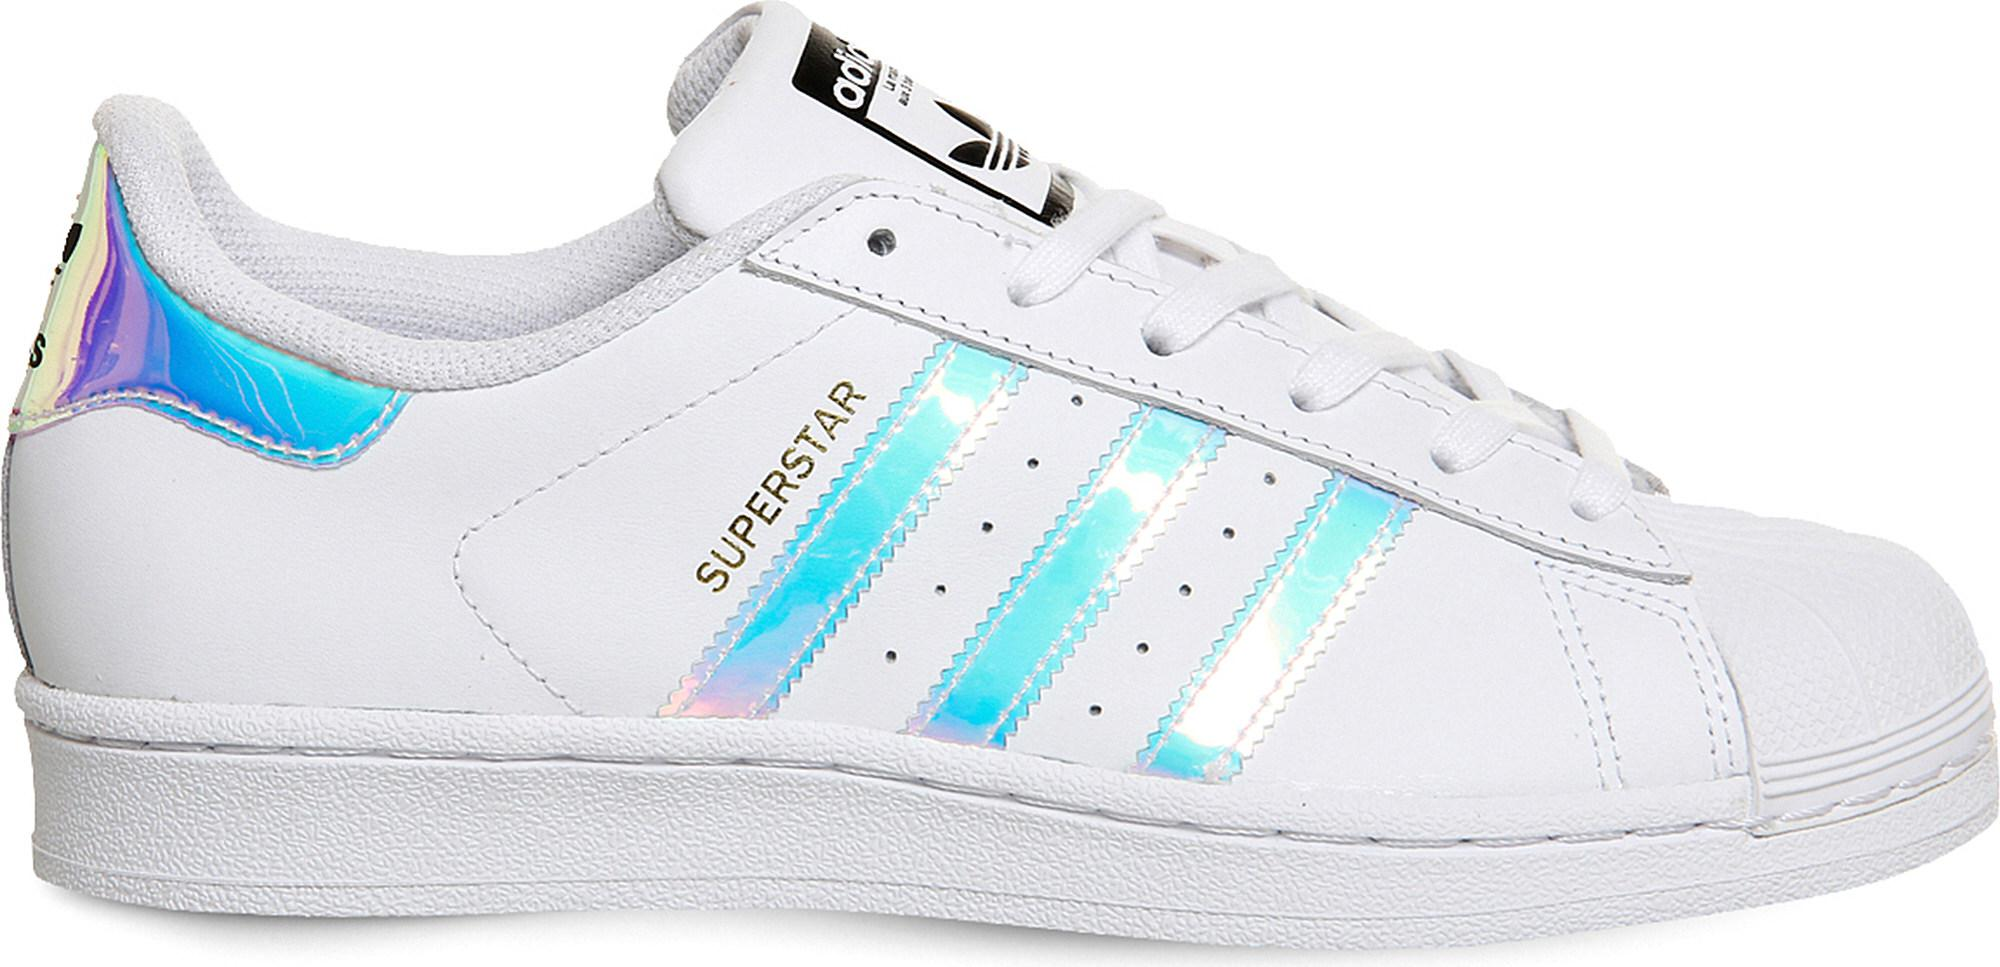 watch 4b5d1 cd7c8 Lyst - adidas Superstar Gs Leather Trainers in White